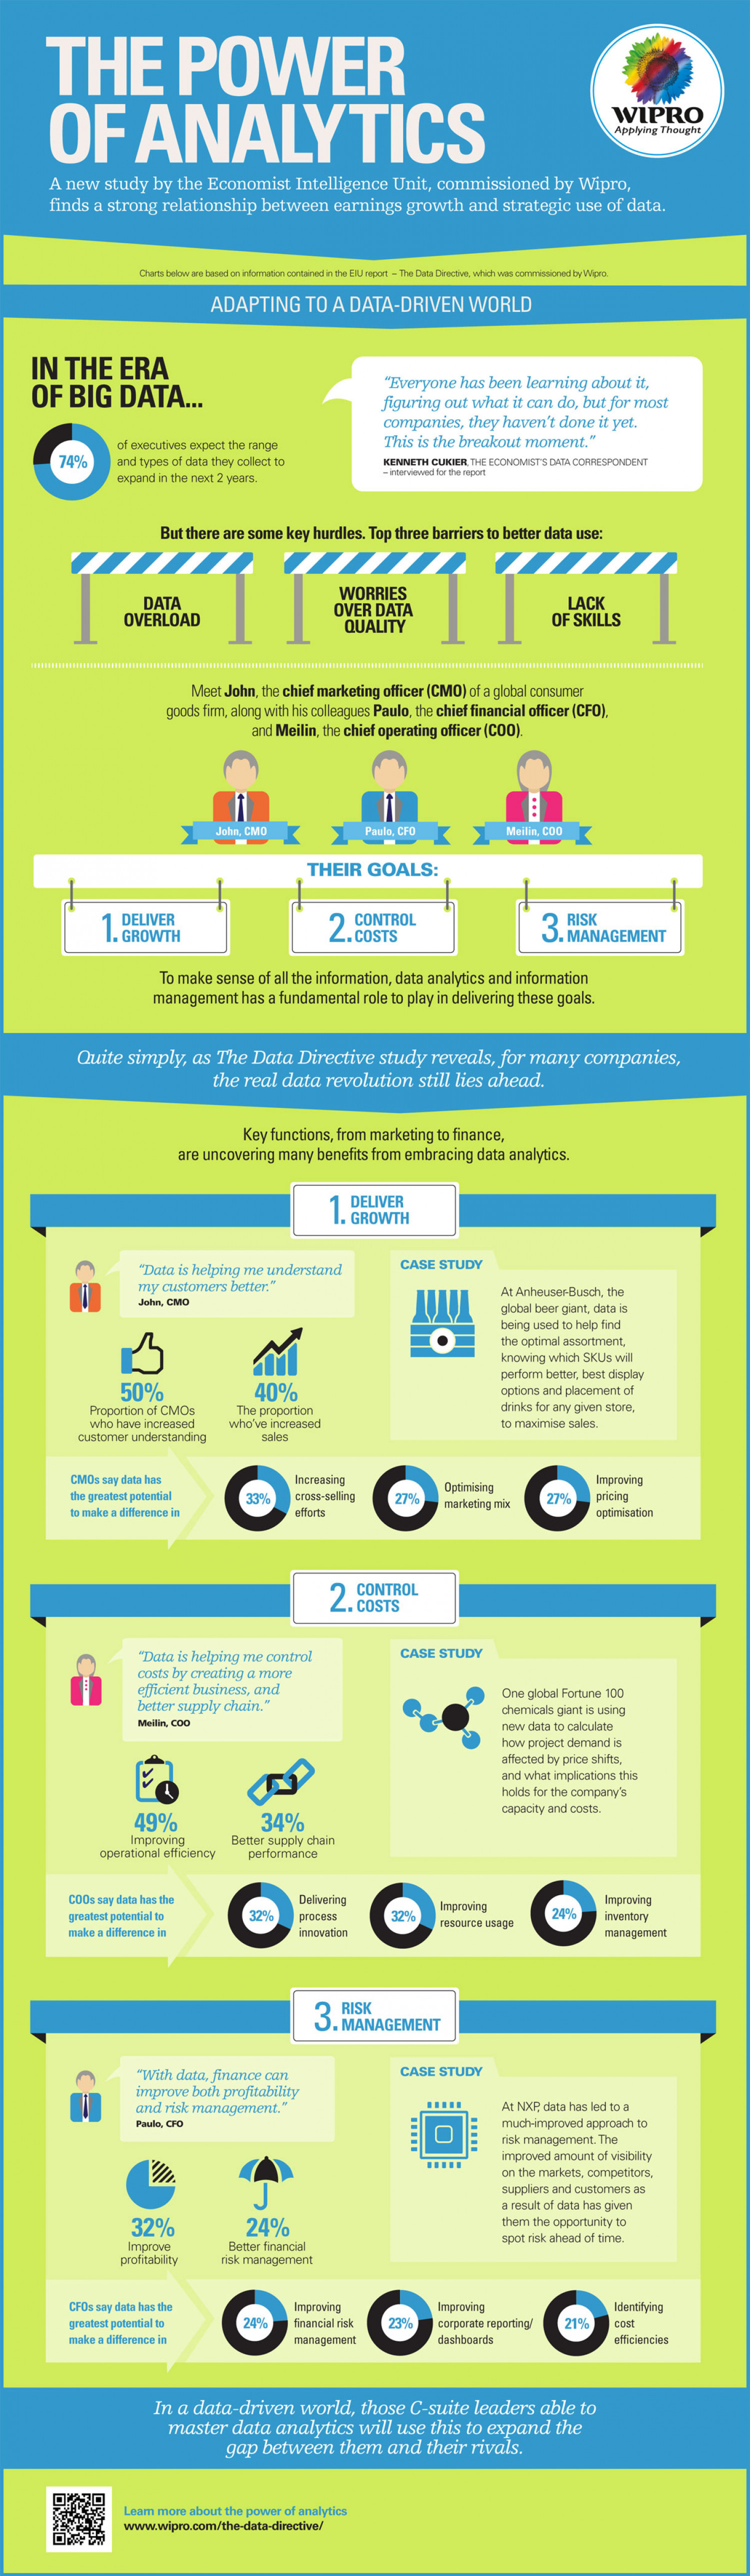 The Power of Analytics Infographic